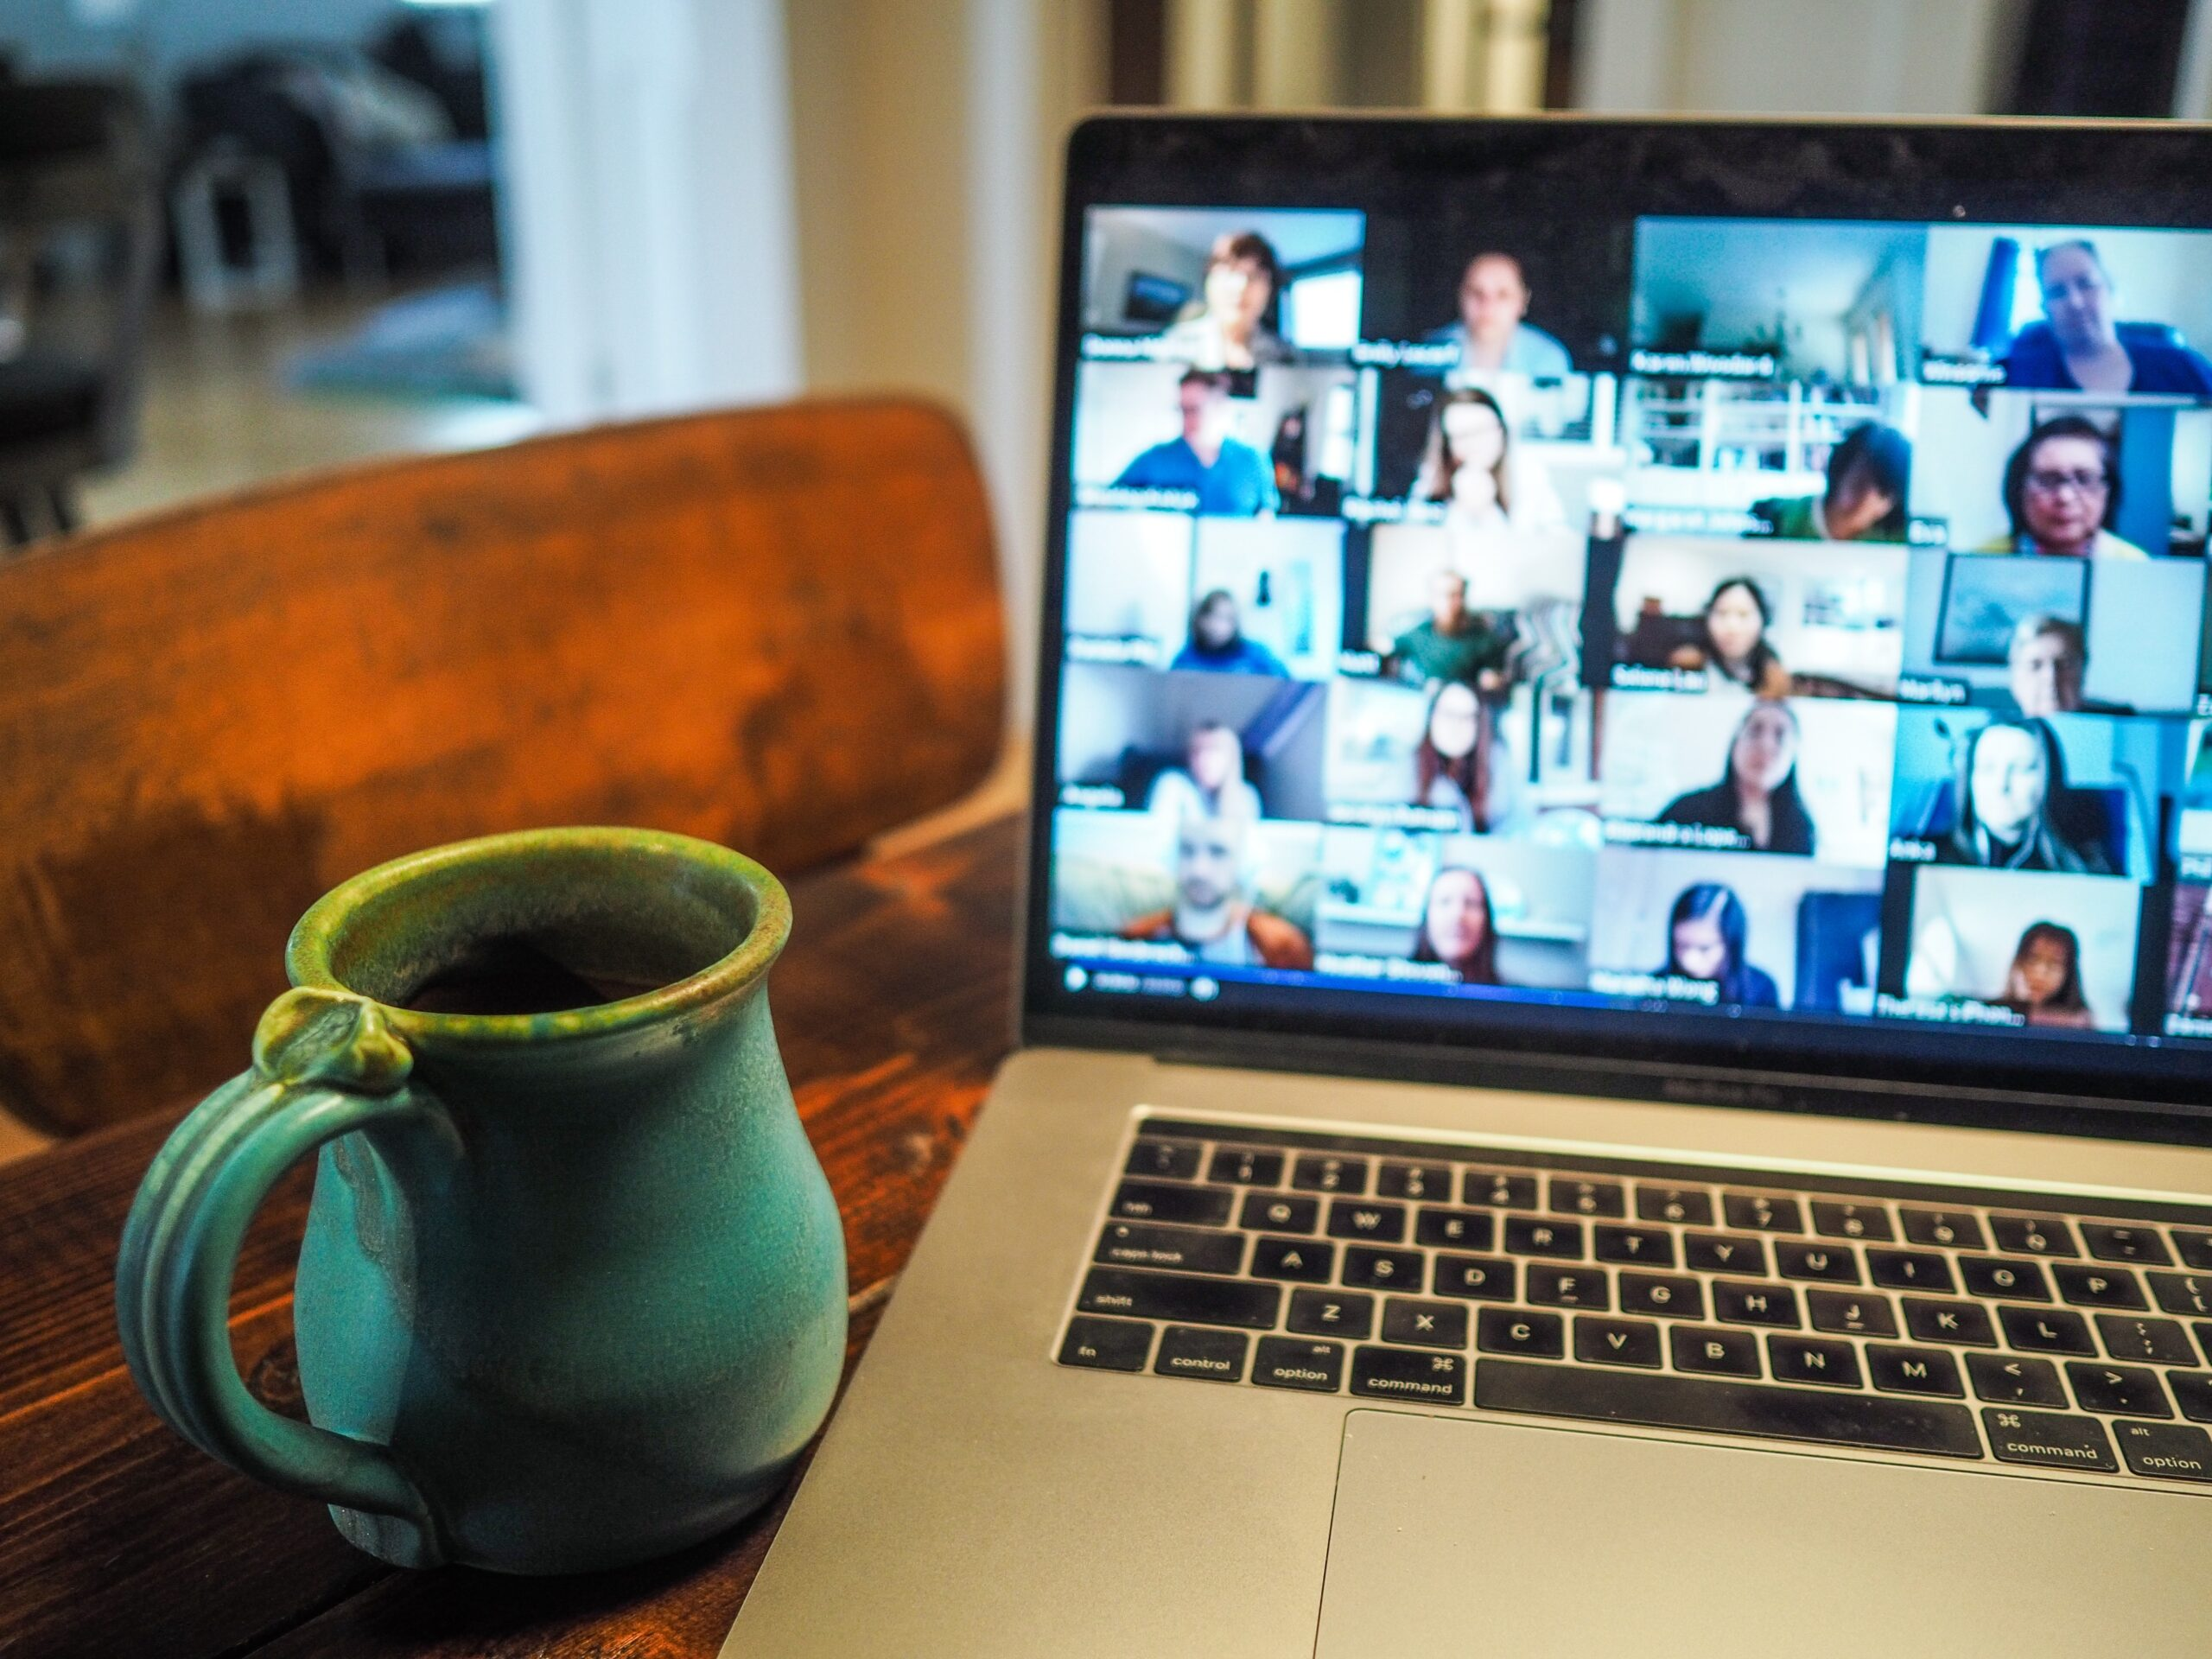 family support group video conferencing